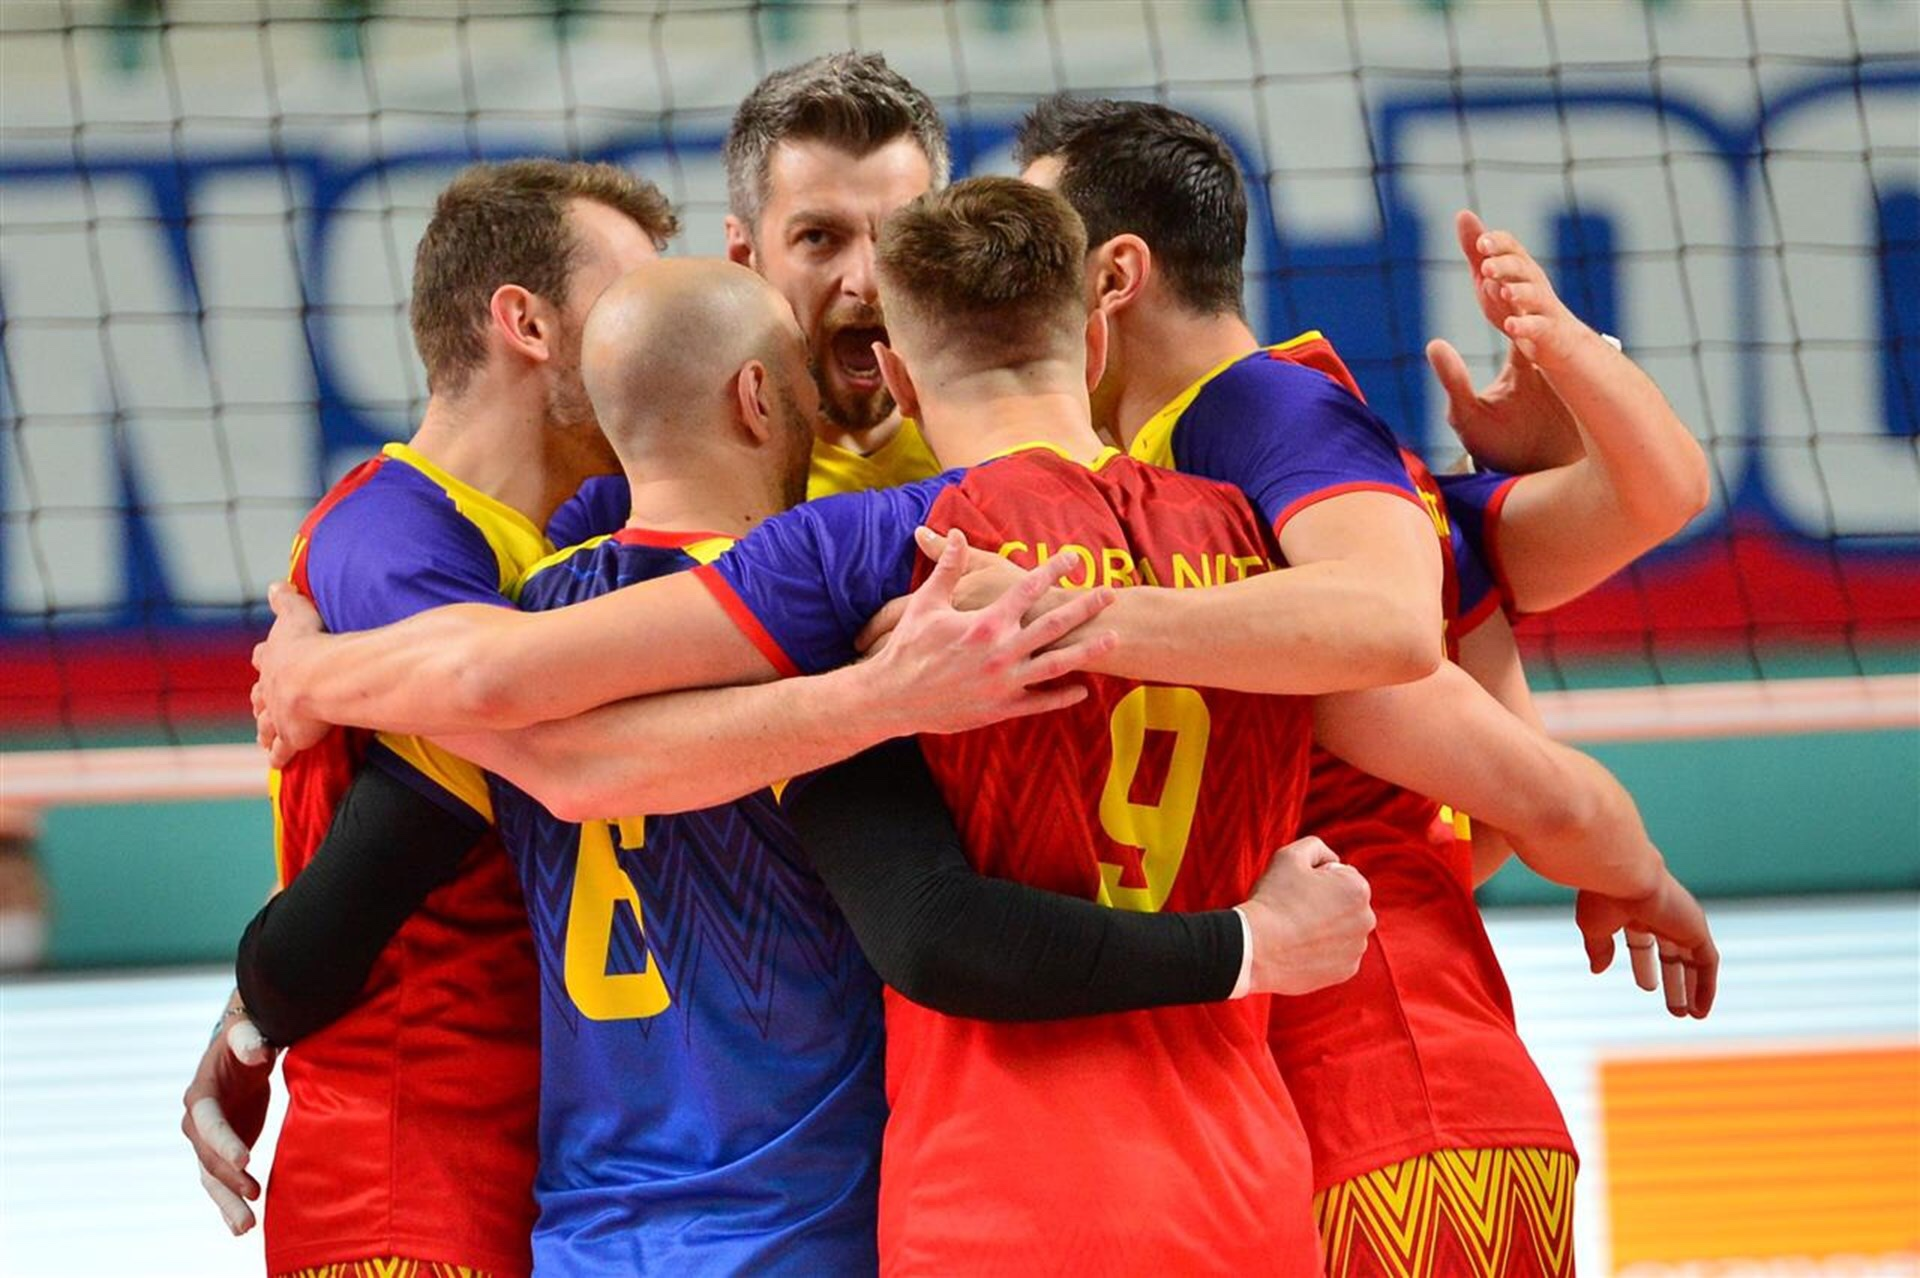 EuroVolley2021 Qualifiers: victory for Slovakia and Romania